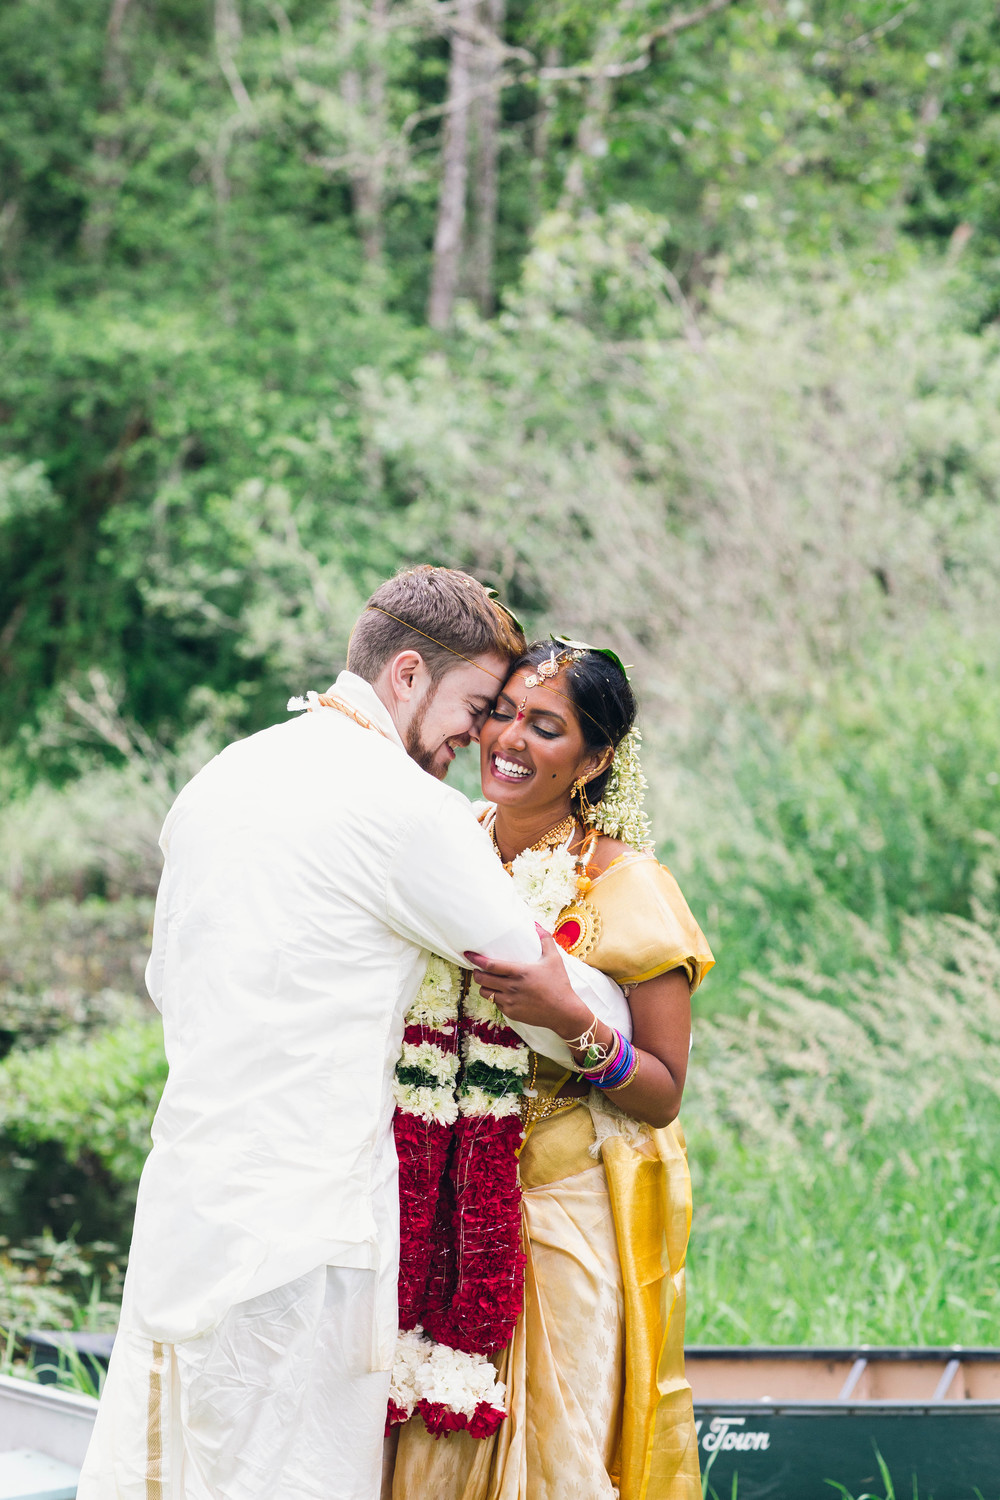 Hima+Dan_Wedding_Seattle+Couple_Kingston_6112016_2.jpg